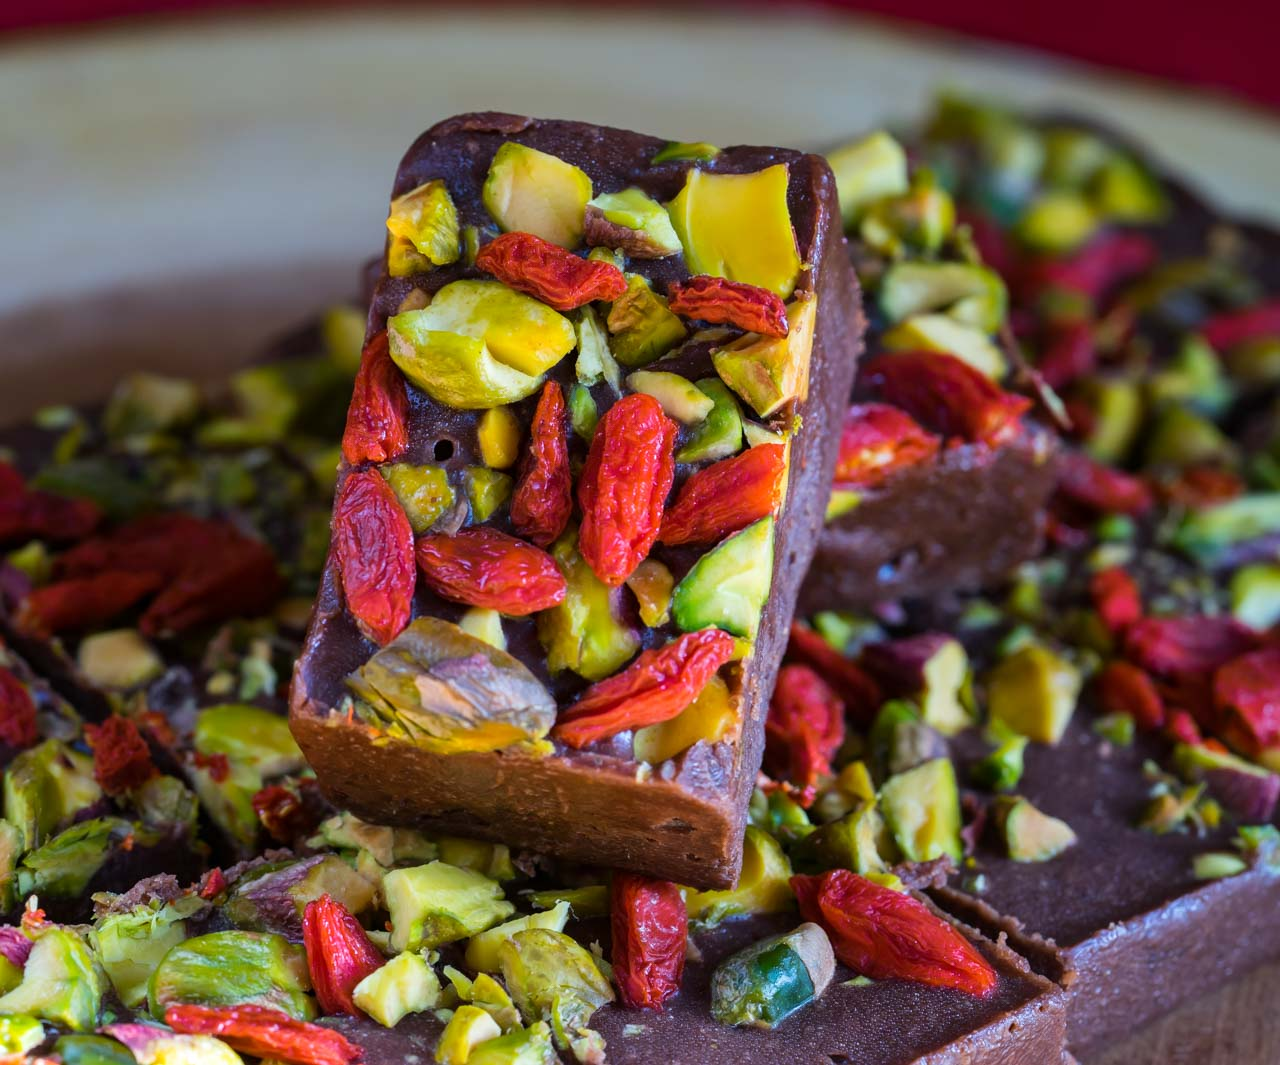 Healthy Pistachio Goji Chocolate Fudge